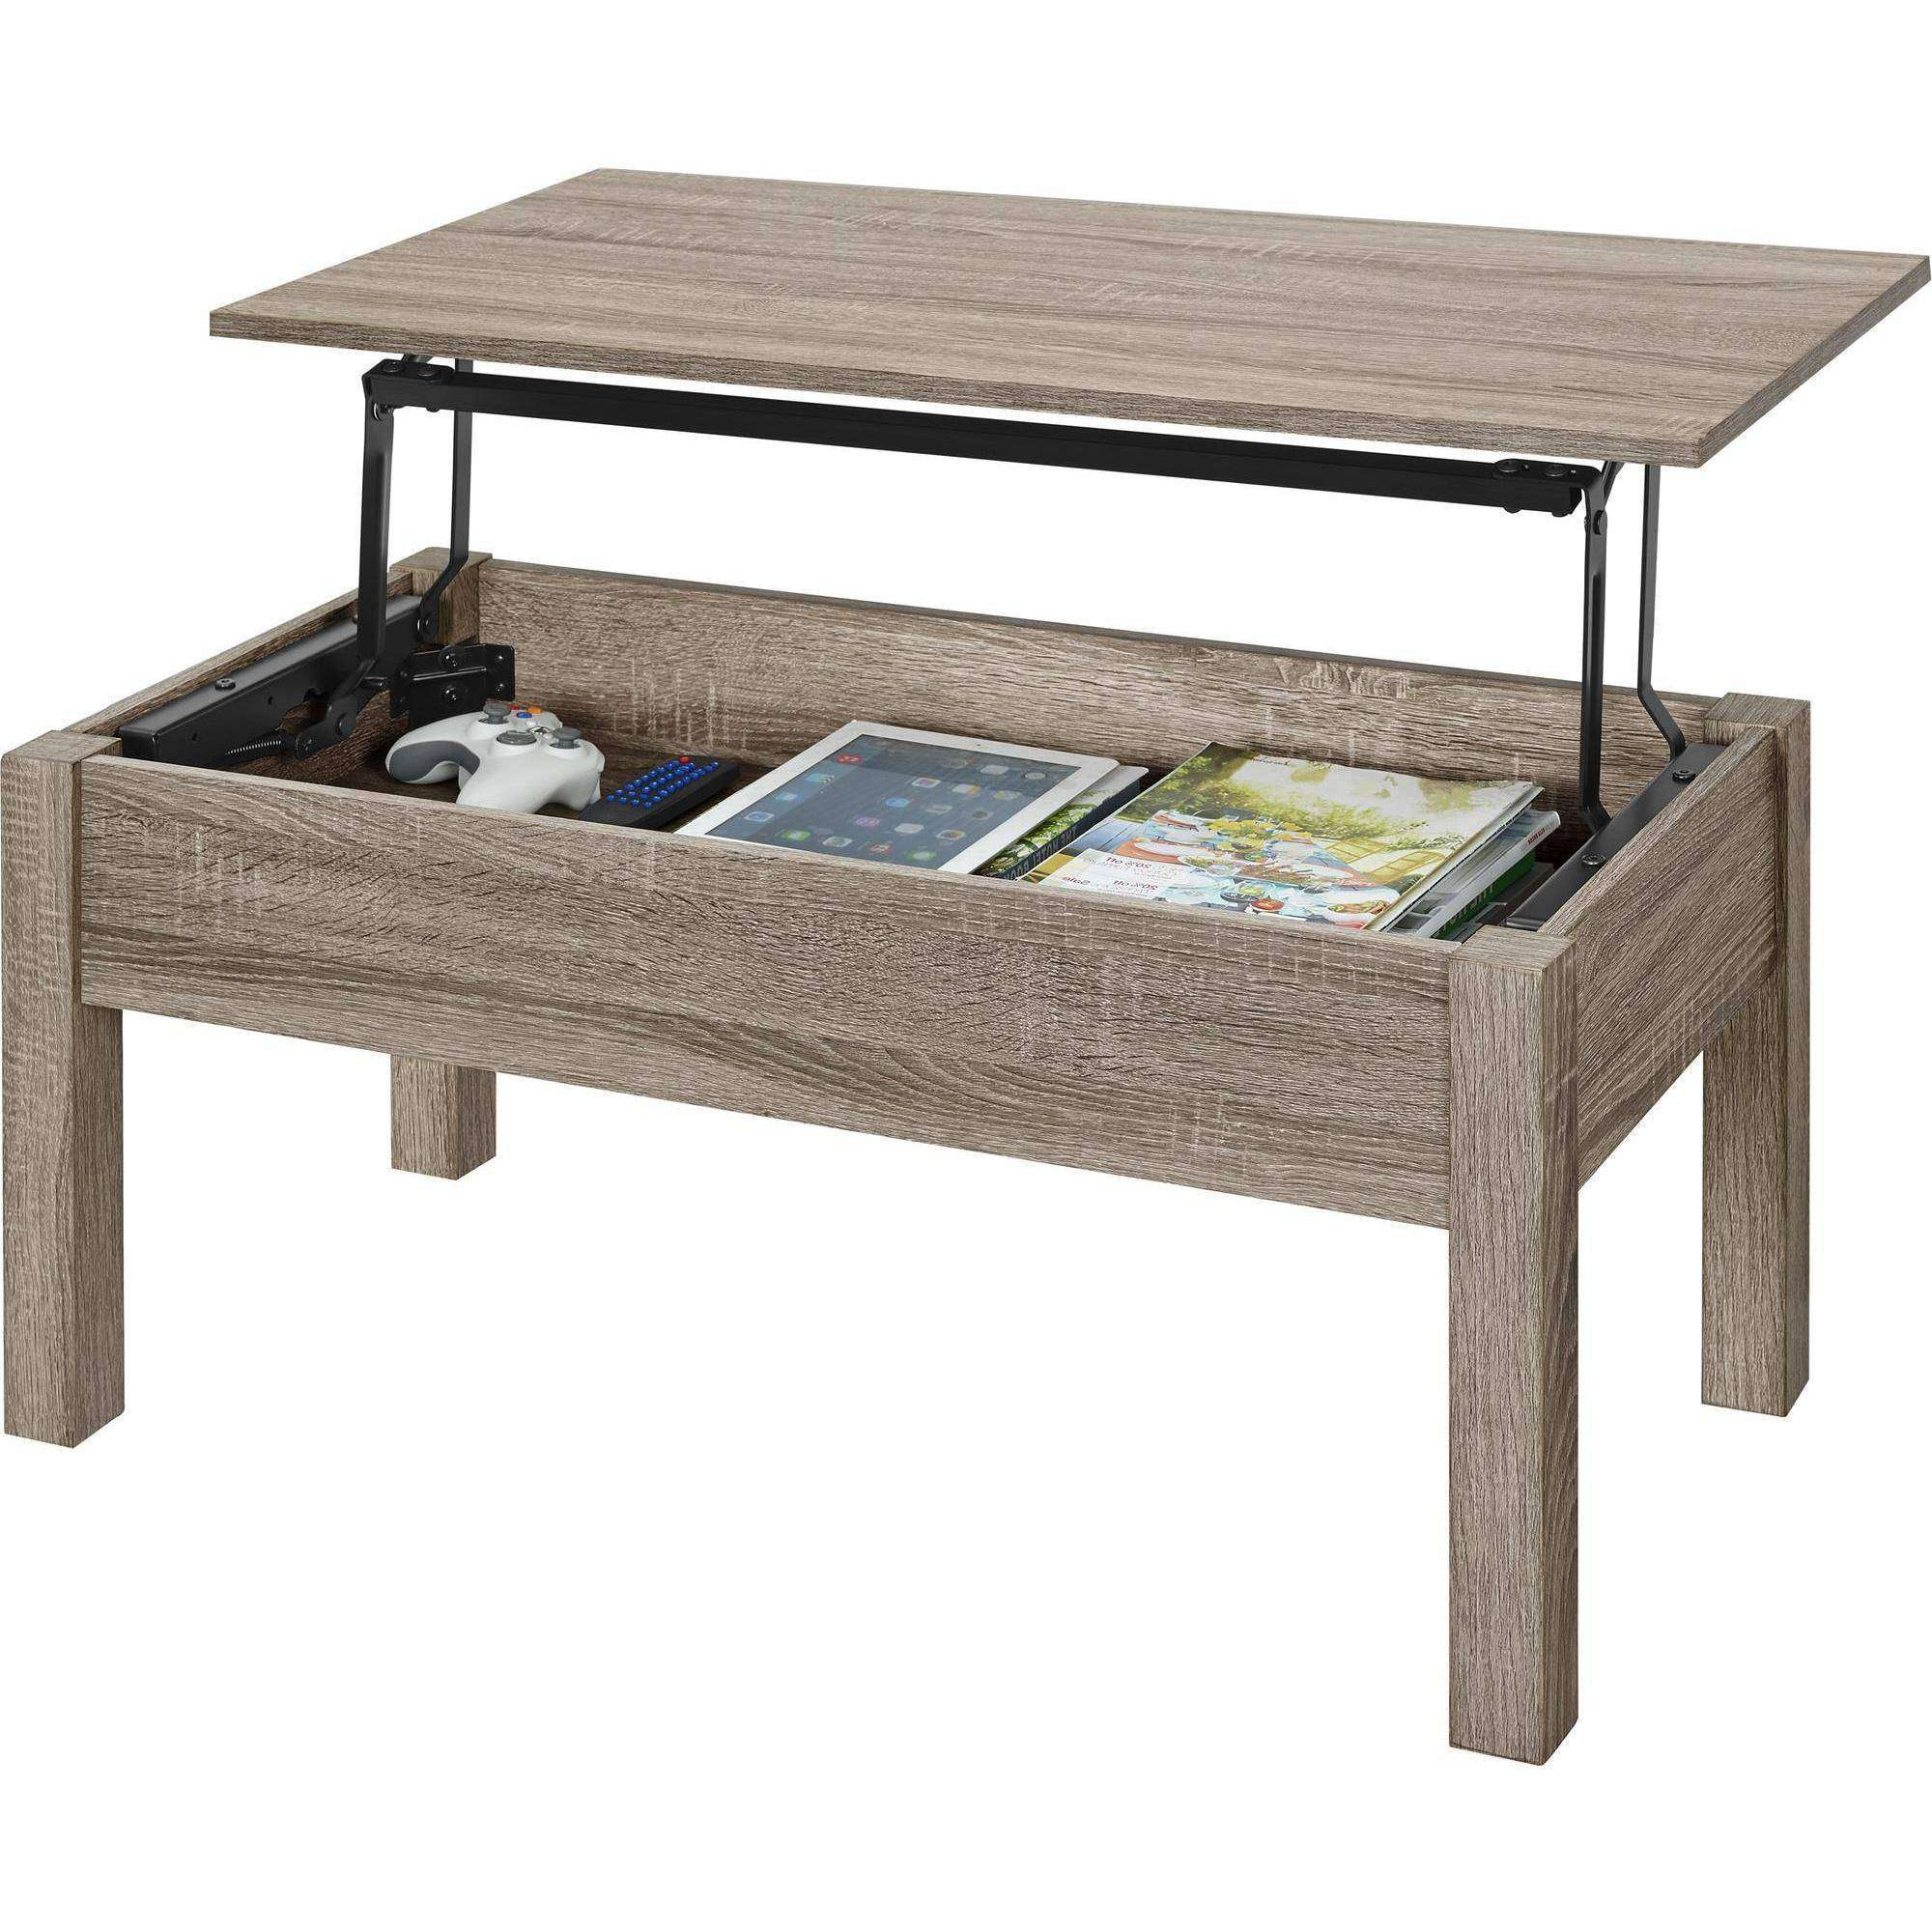 Mainstays Lift Top Coffee Table, Multiple Colors – Walmart Pertaining To Well Known Lift Up Coffee Tables (View 6 of 20)